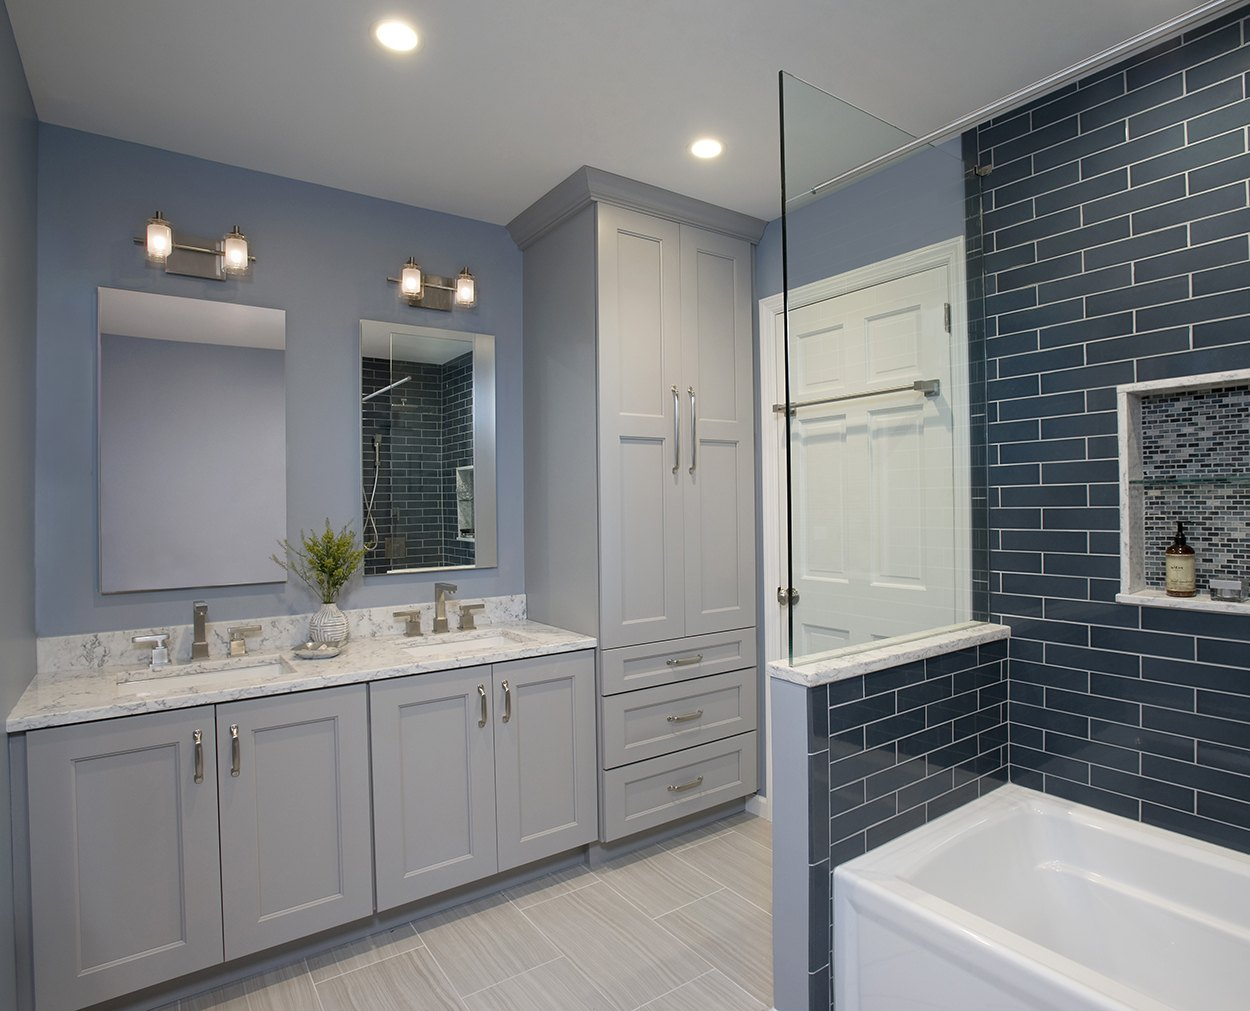 Wellborn Dove Vanities in this Ridgefield bathroom renovation